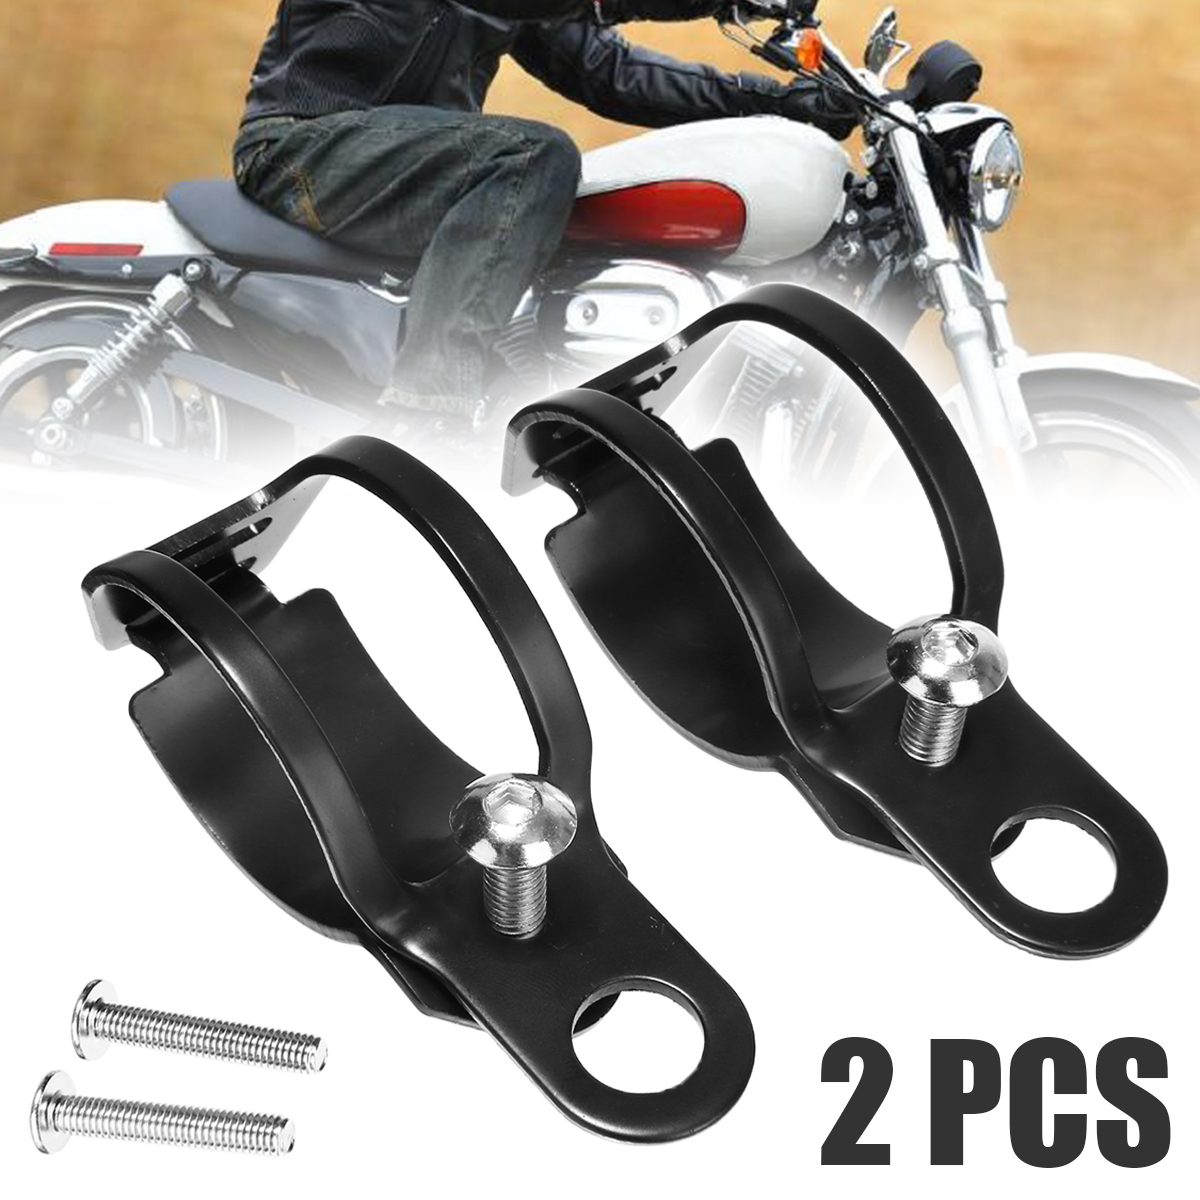 Motorbike 1Pair Universal Motorcycle Turn Signal Lamp Headlight Mount Bracket Black Metal Clamp Holder For 33 43mm Front Fork in Headlight Bracket from Automobiles Motorcycles